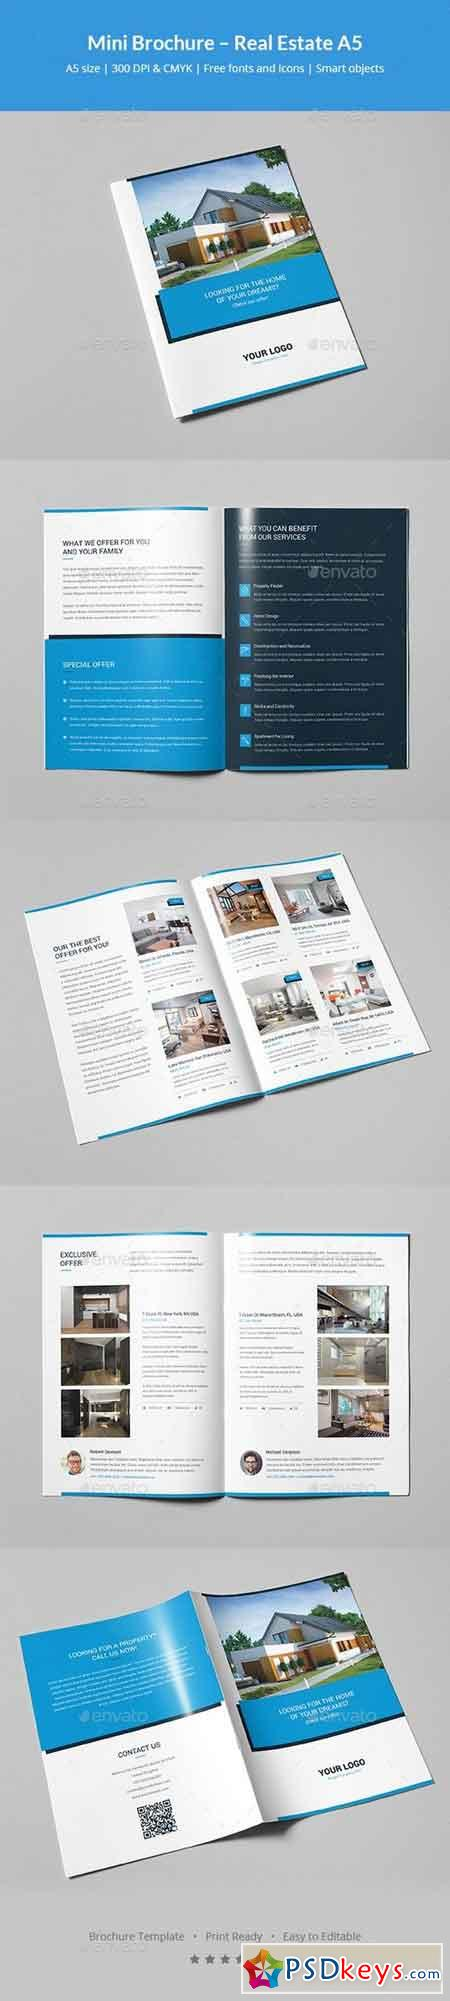 Mini Brochure – Real Estate A5 21090680